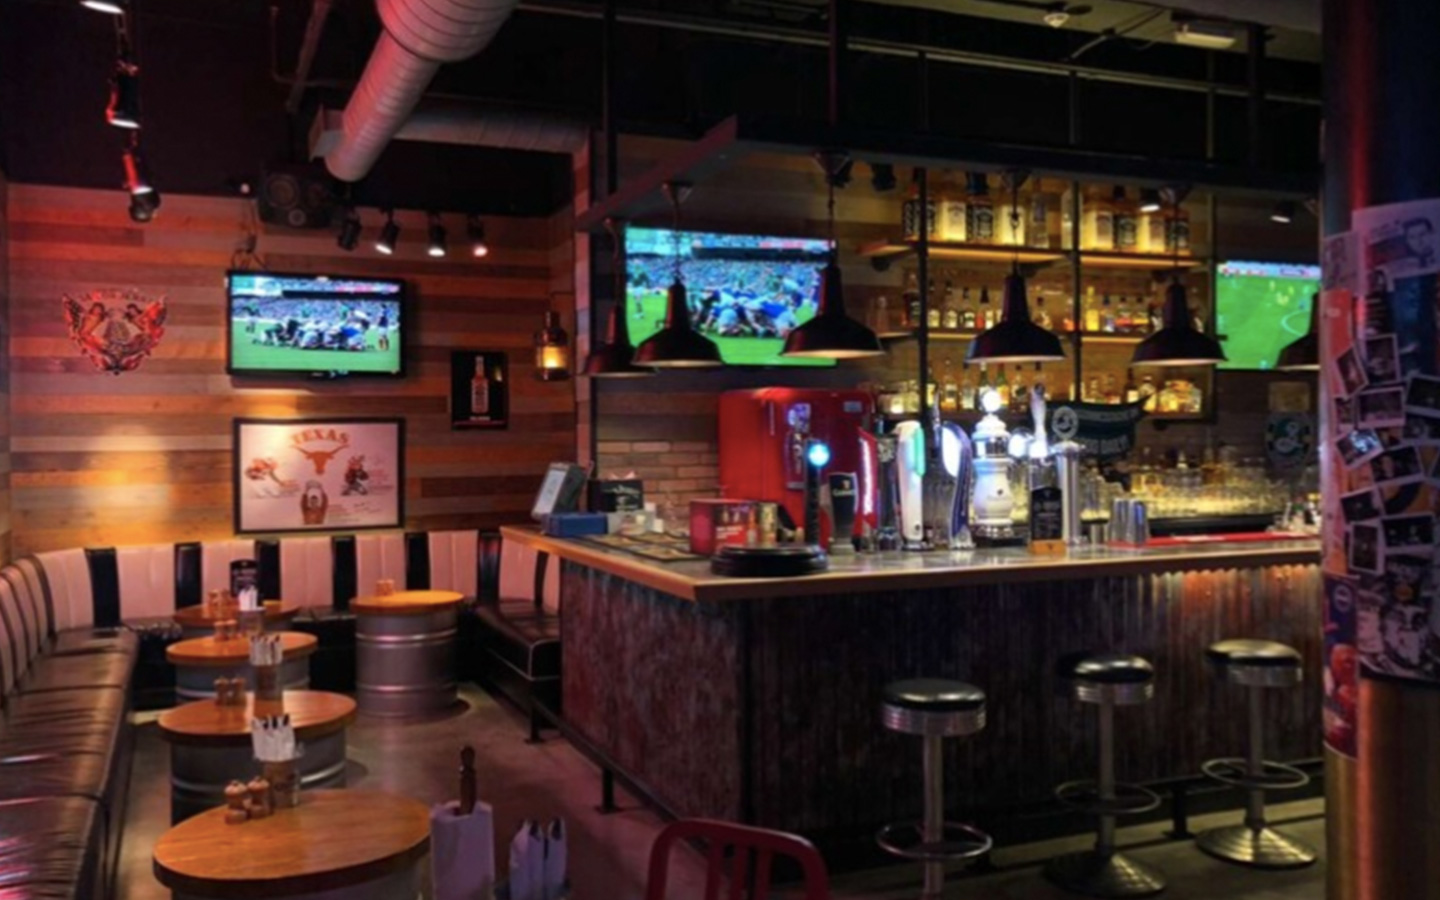 Perry & Blackwelder's is screening the Rugby World Cup in Dubai